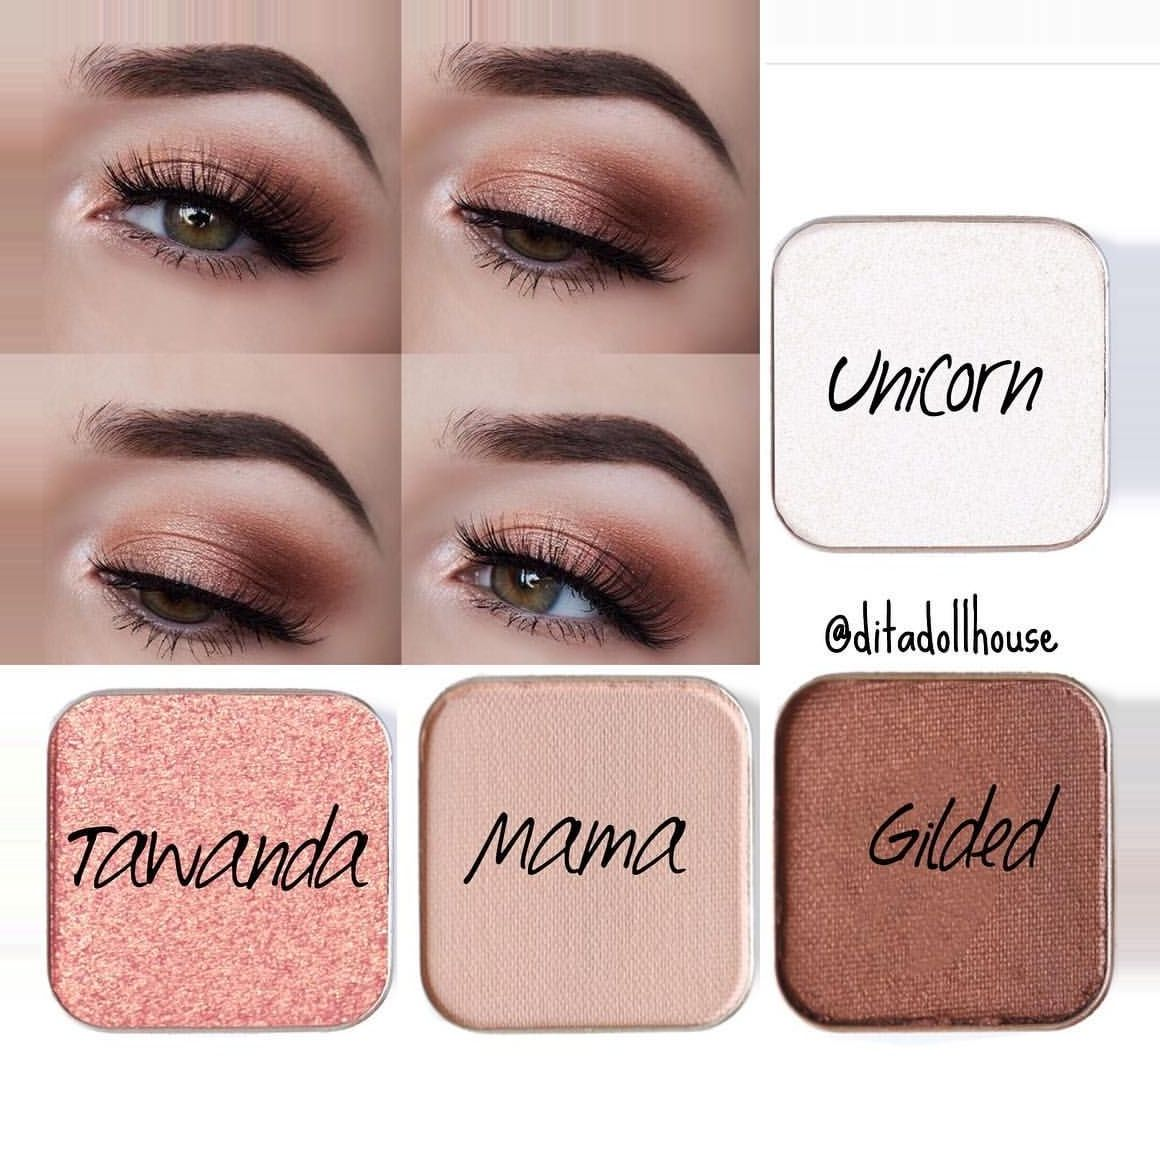 #untitled #winter makeup for brown eyes tutorials  #winter #makeup #snow